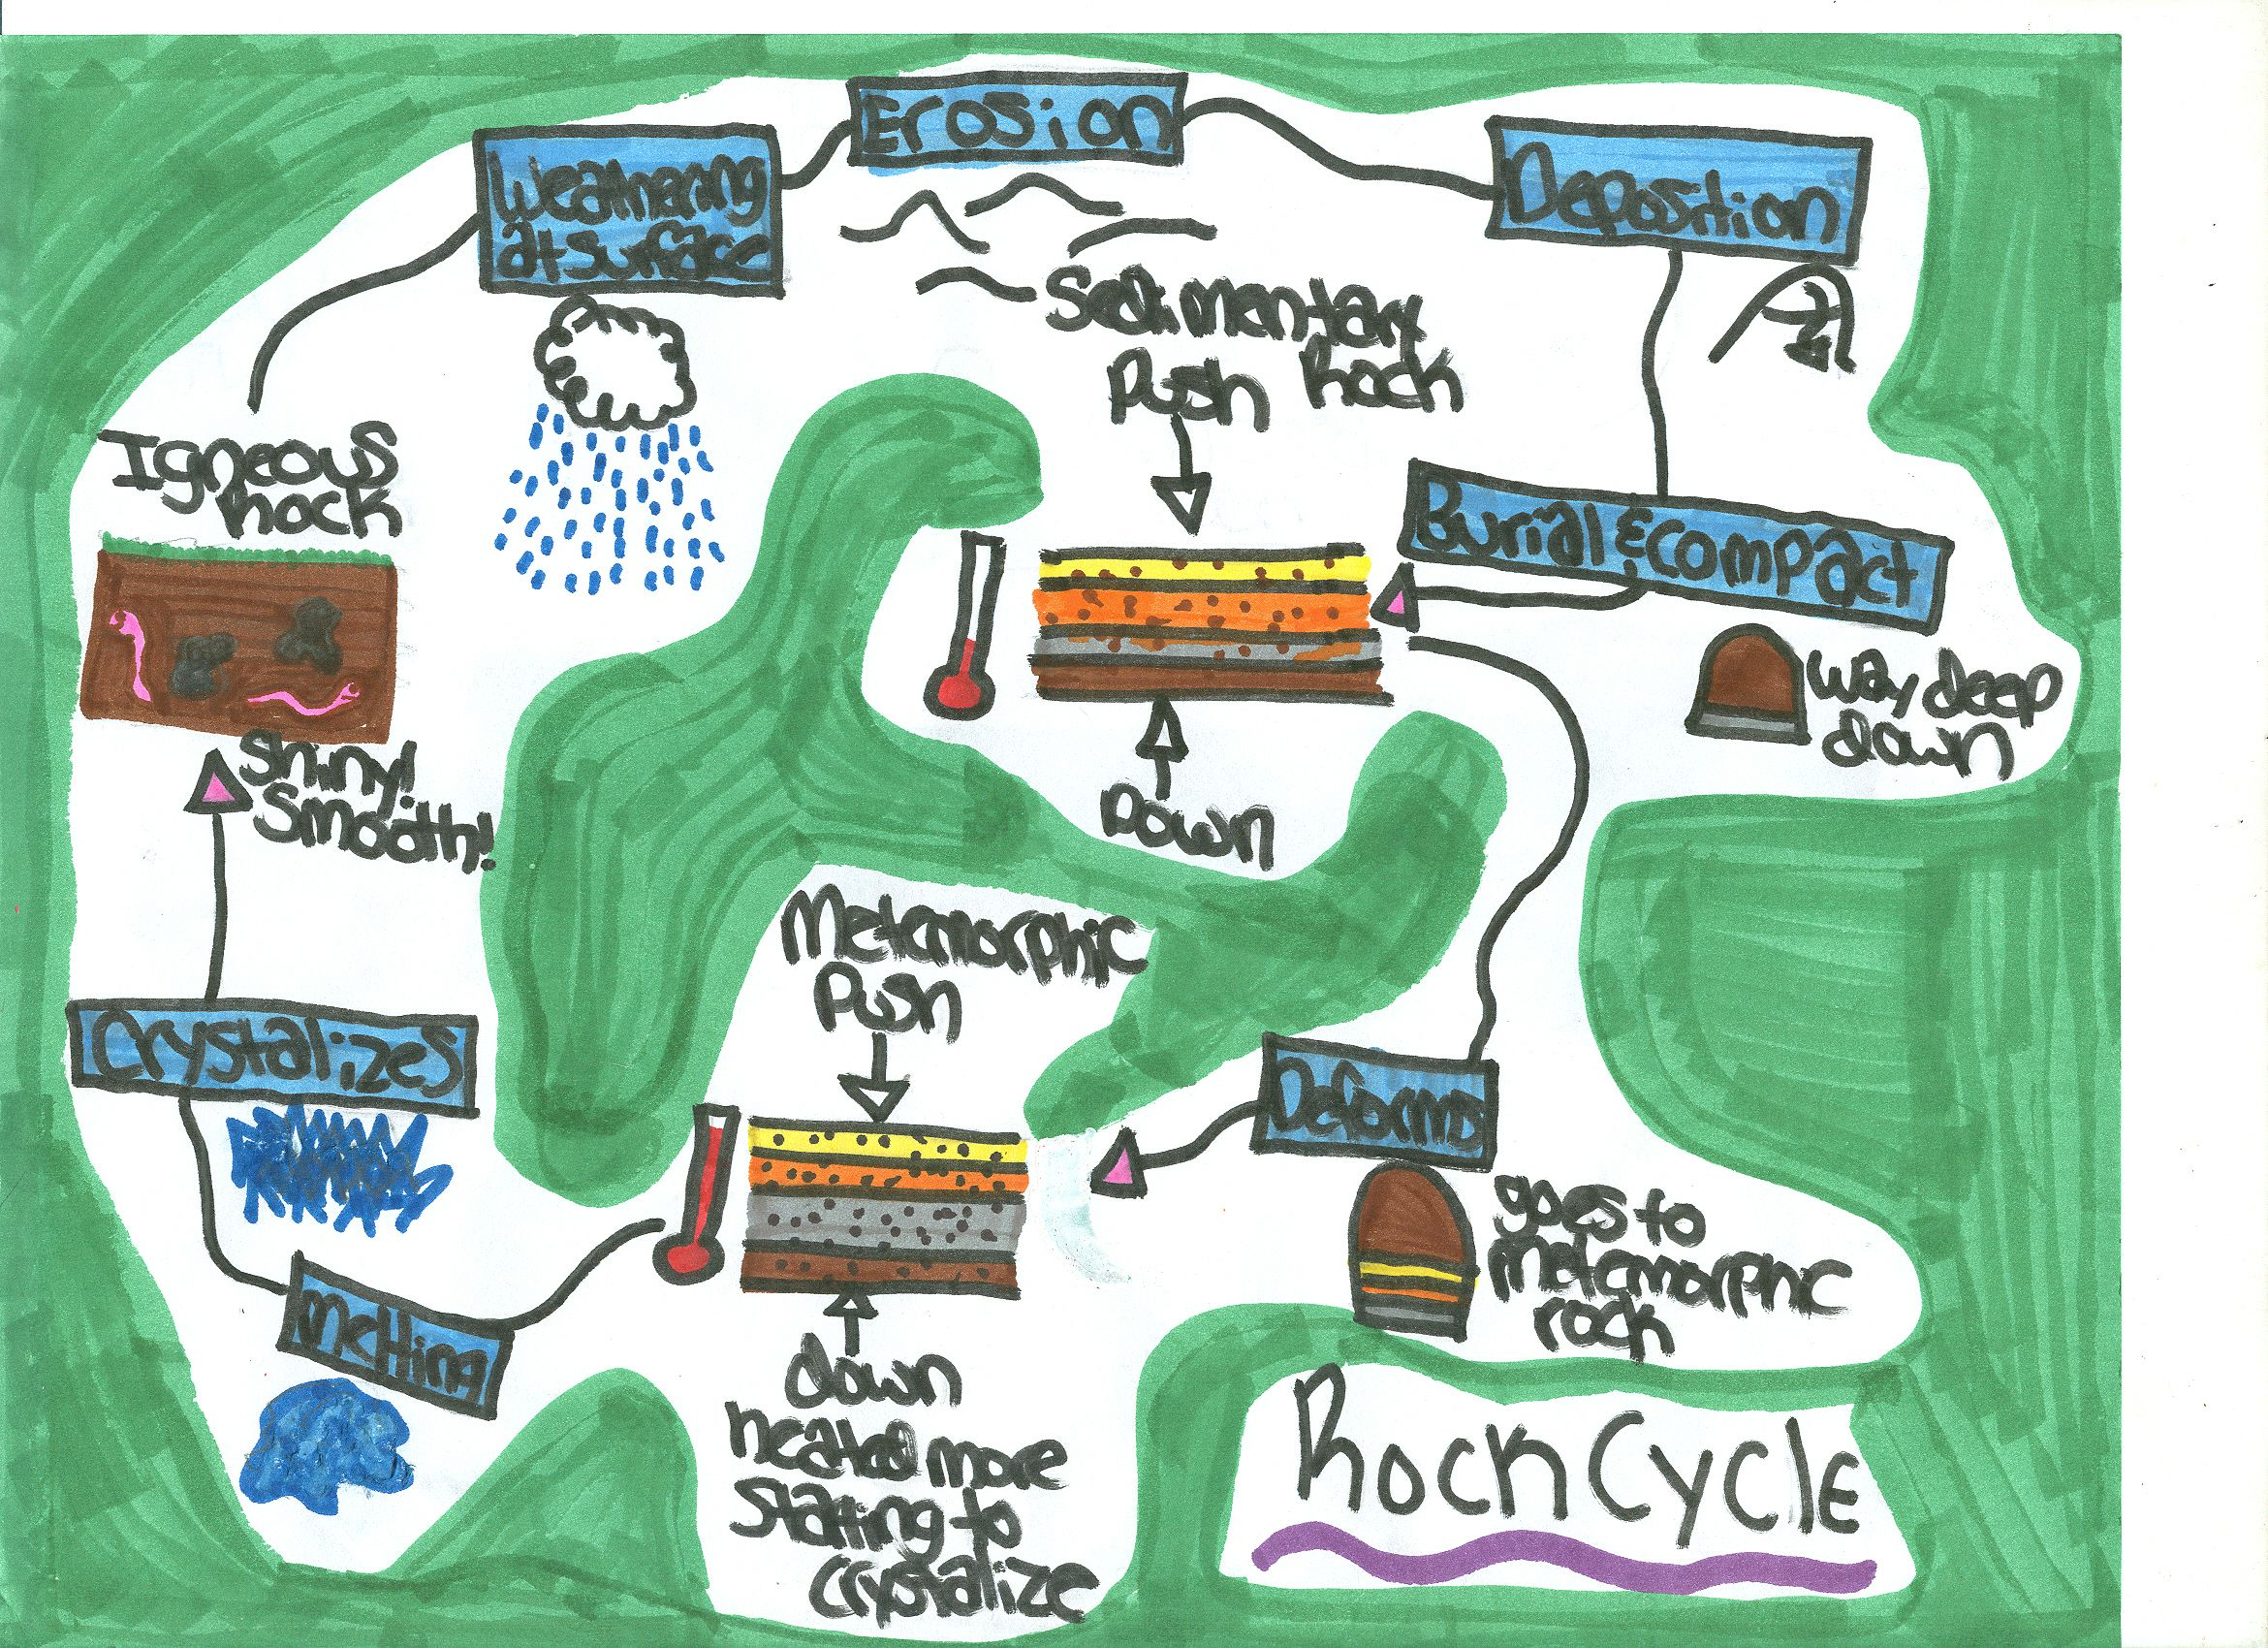 Rock cycle images for kids ocks soil teaching geology rock cycle images for kids pooptronica